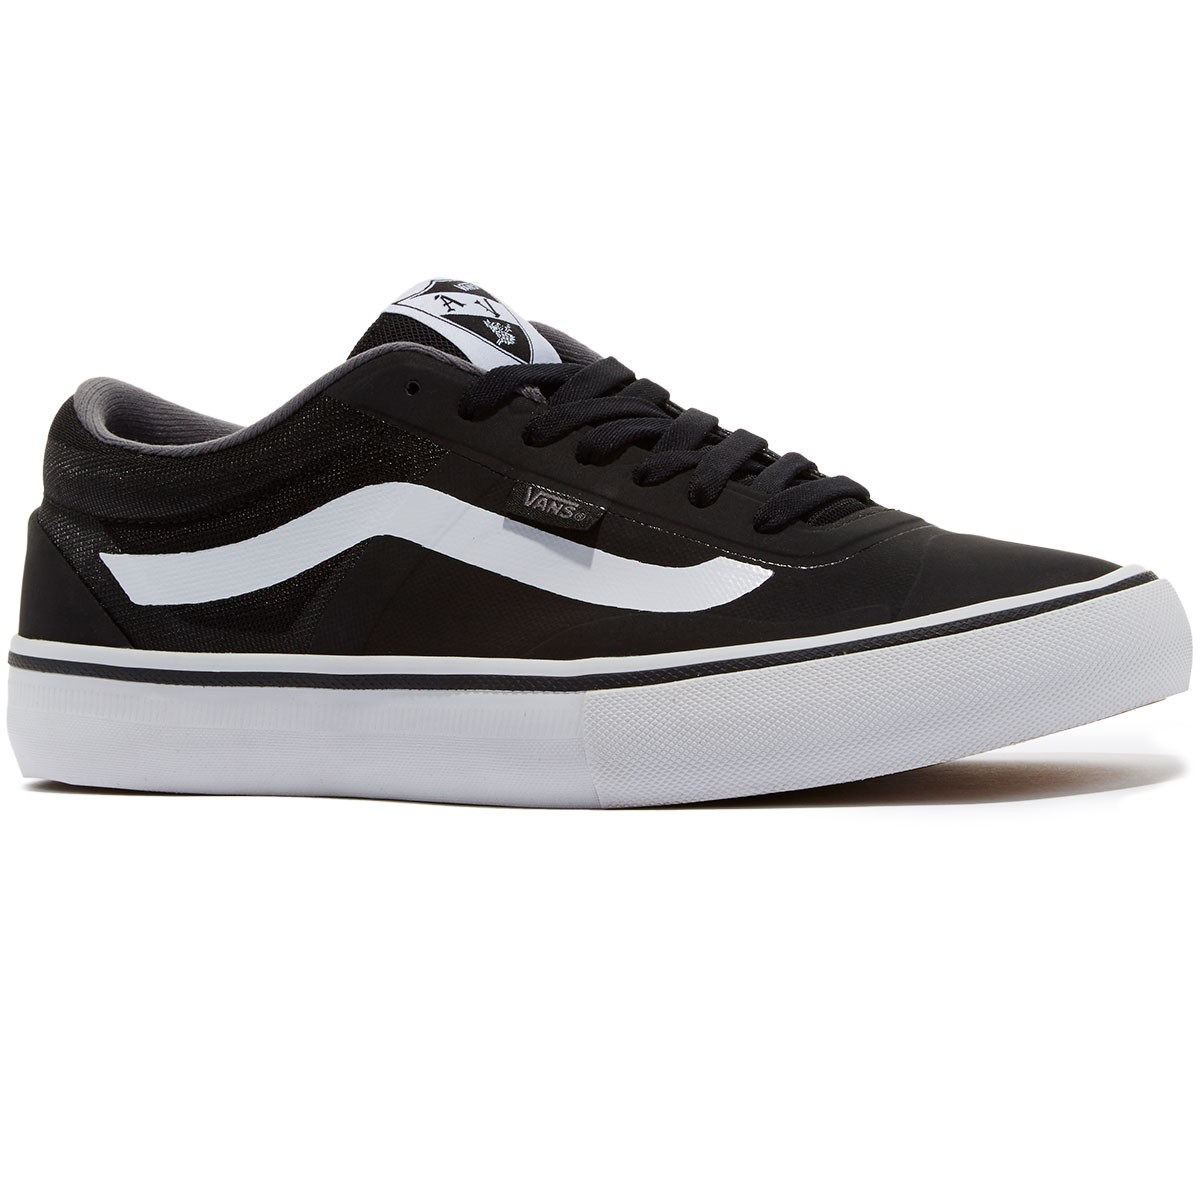 b11d440a99 Vans AV RapidWeld Pro Lite Shoes - Black White - 8.0